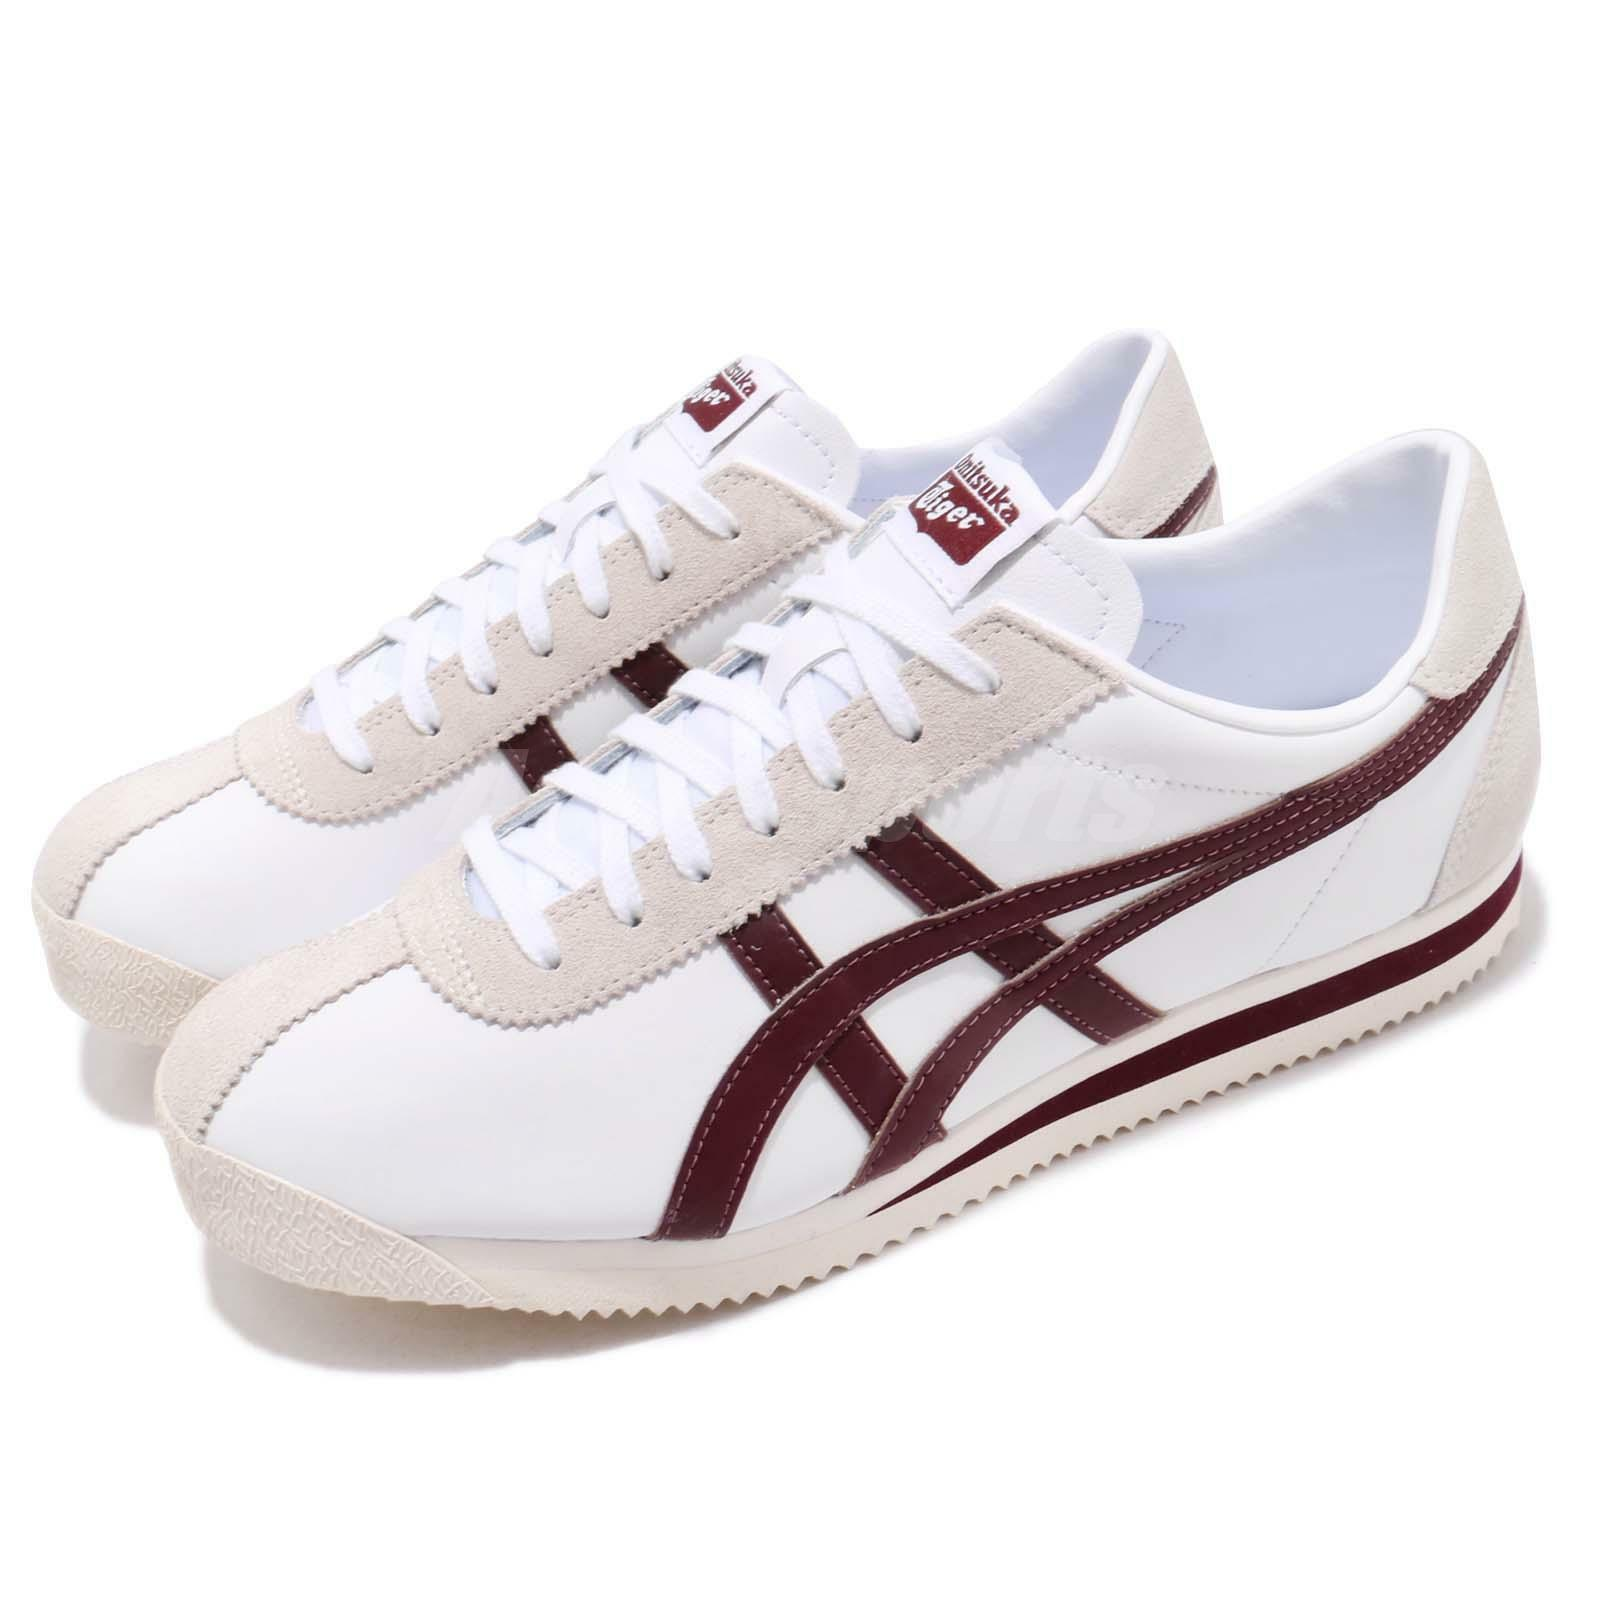 Asics Onitsuka Tiger Corsair White Port Royal Men Running Casual Shoes D7J4L-102